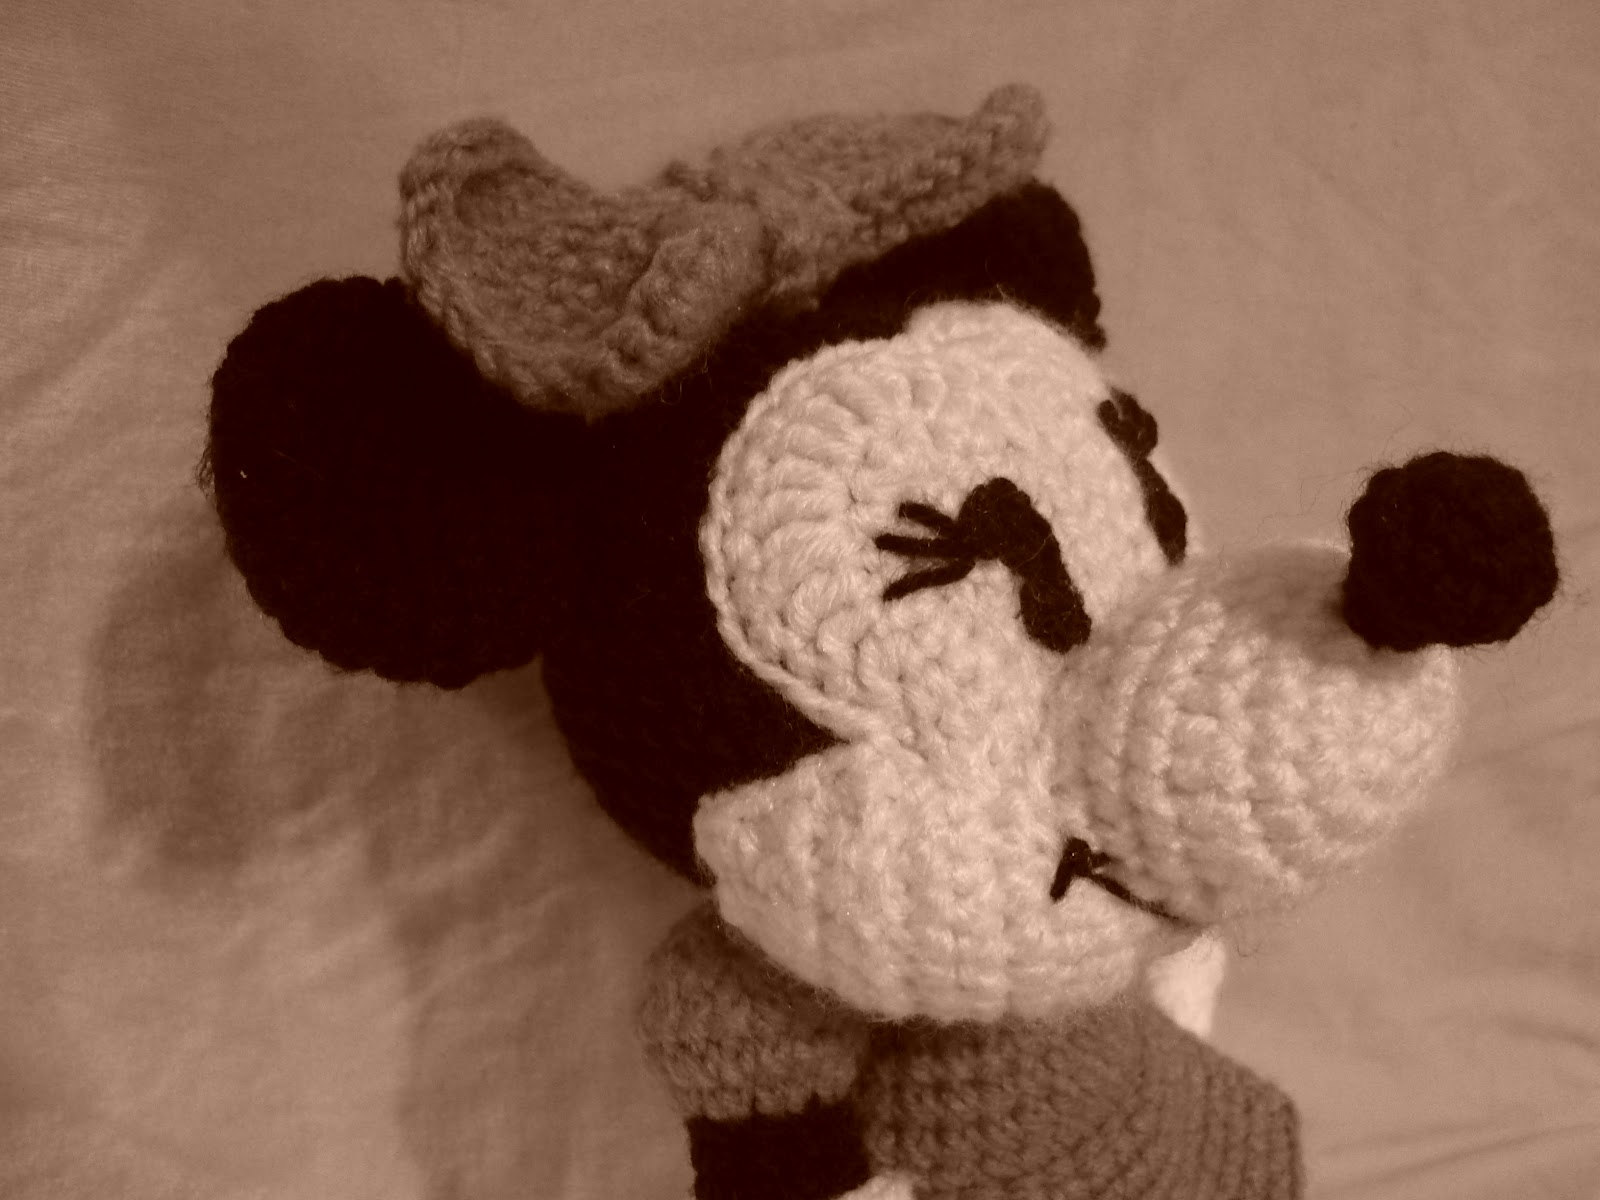 Tutorial Amigurumi Mickey Mouse : Mickey mouse amigurumi patron español mickey mouse amigurumi paso